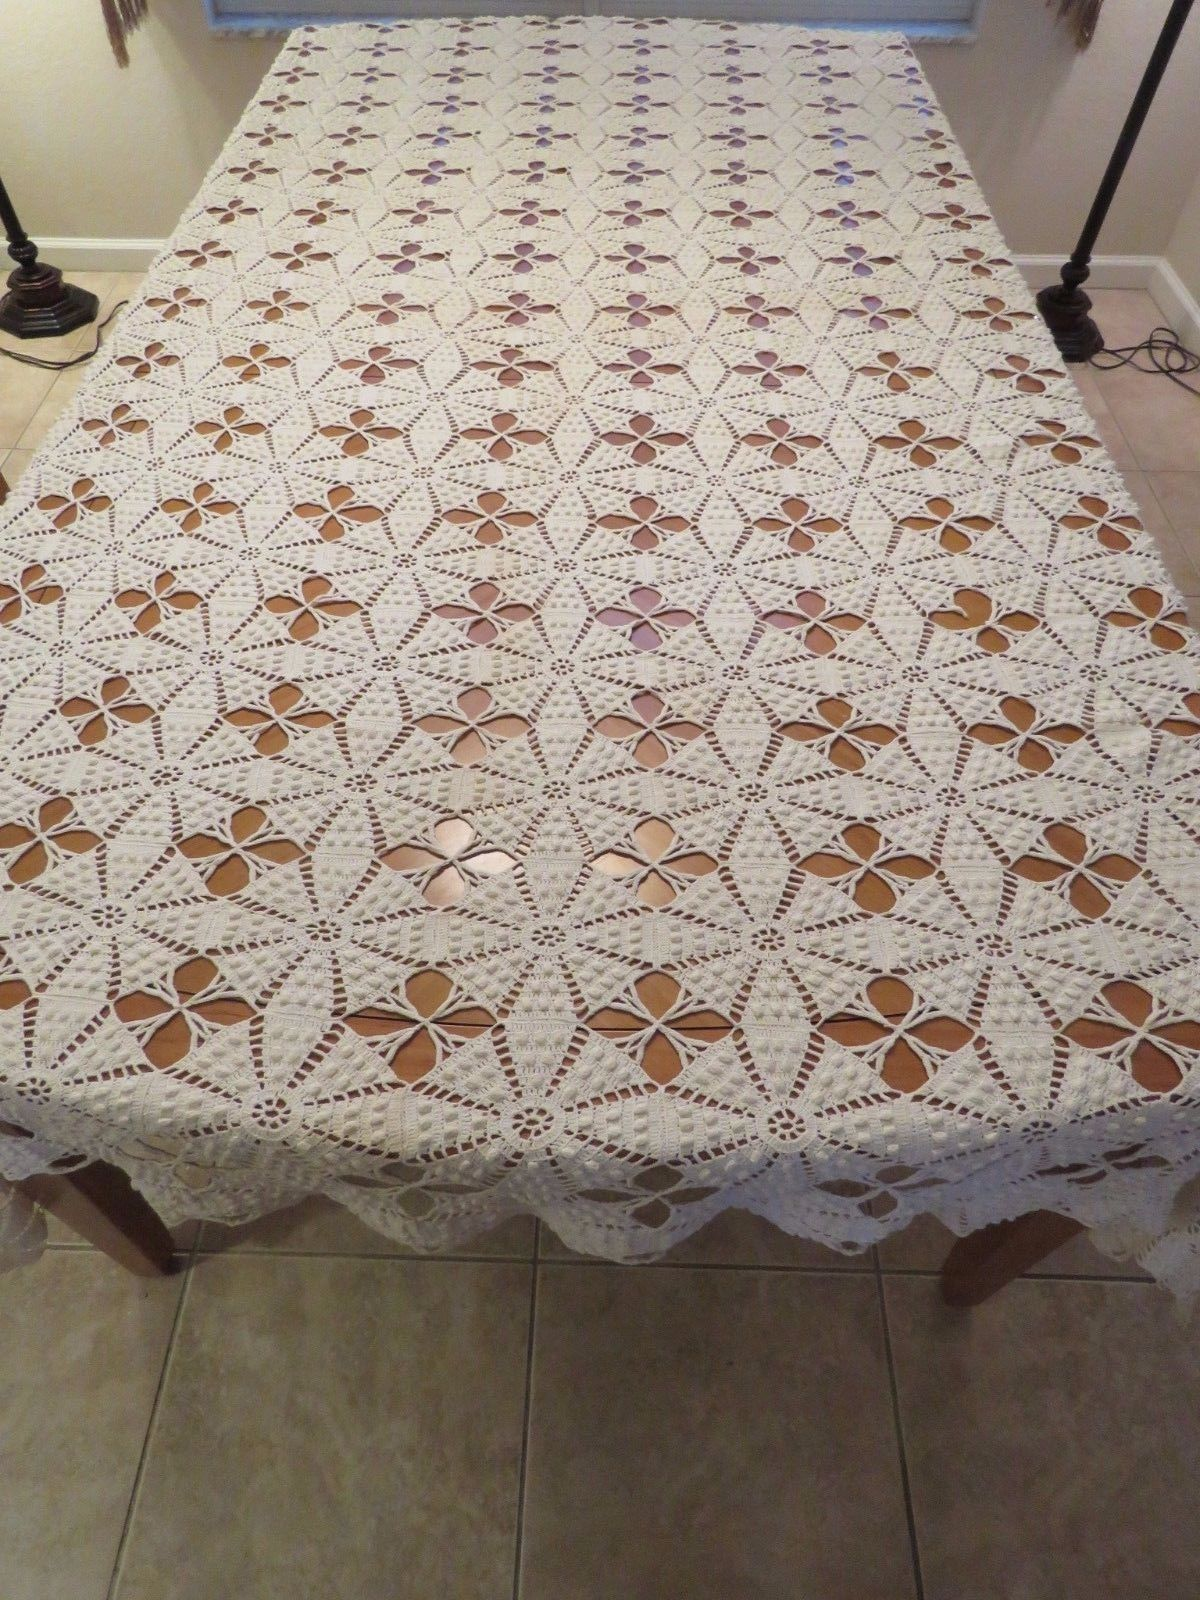 Vintage Bedspread Bed Cover Crocheted Crochet Lace Coverlet Afghan Throw Popcorn (L&T-401)